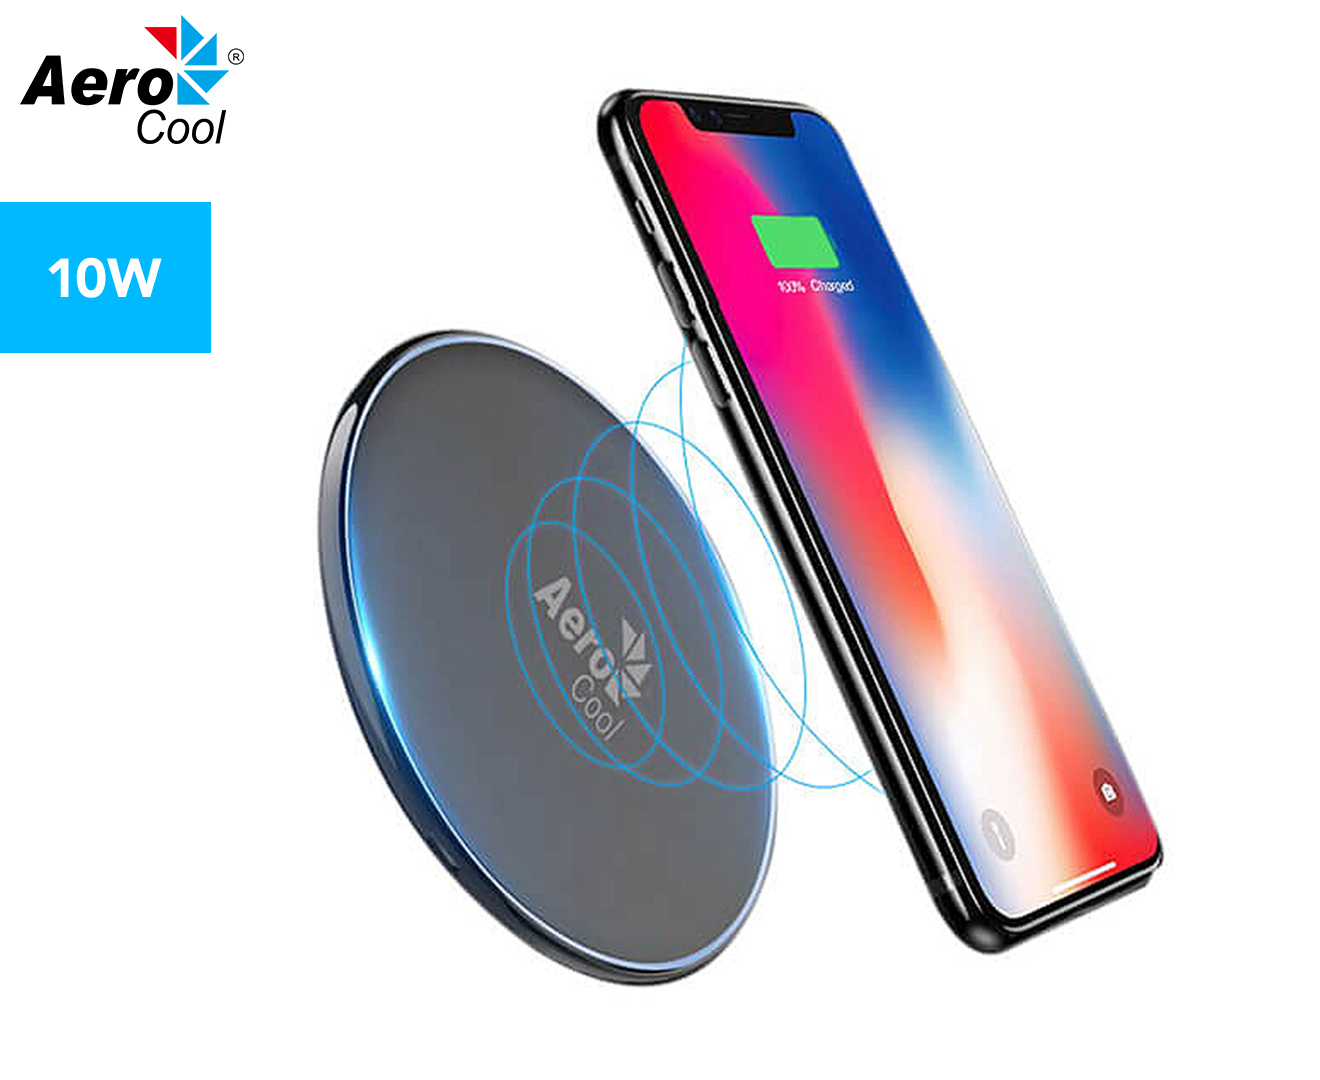 WIRELESS CHARGER SLIMLINE WITH LED LIGHT | Gifts for teenage boys |Beanstalk Mums